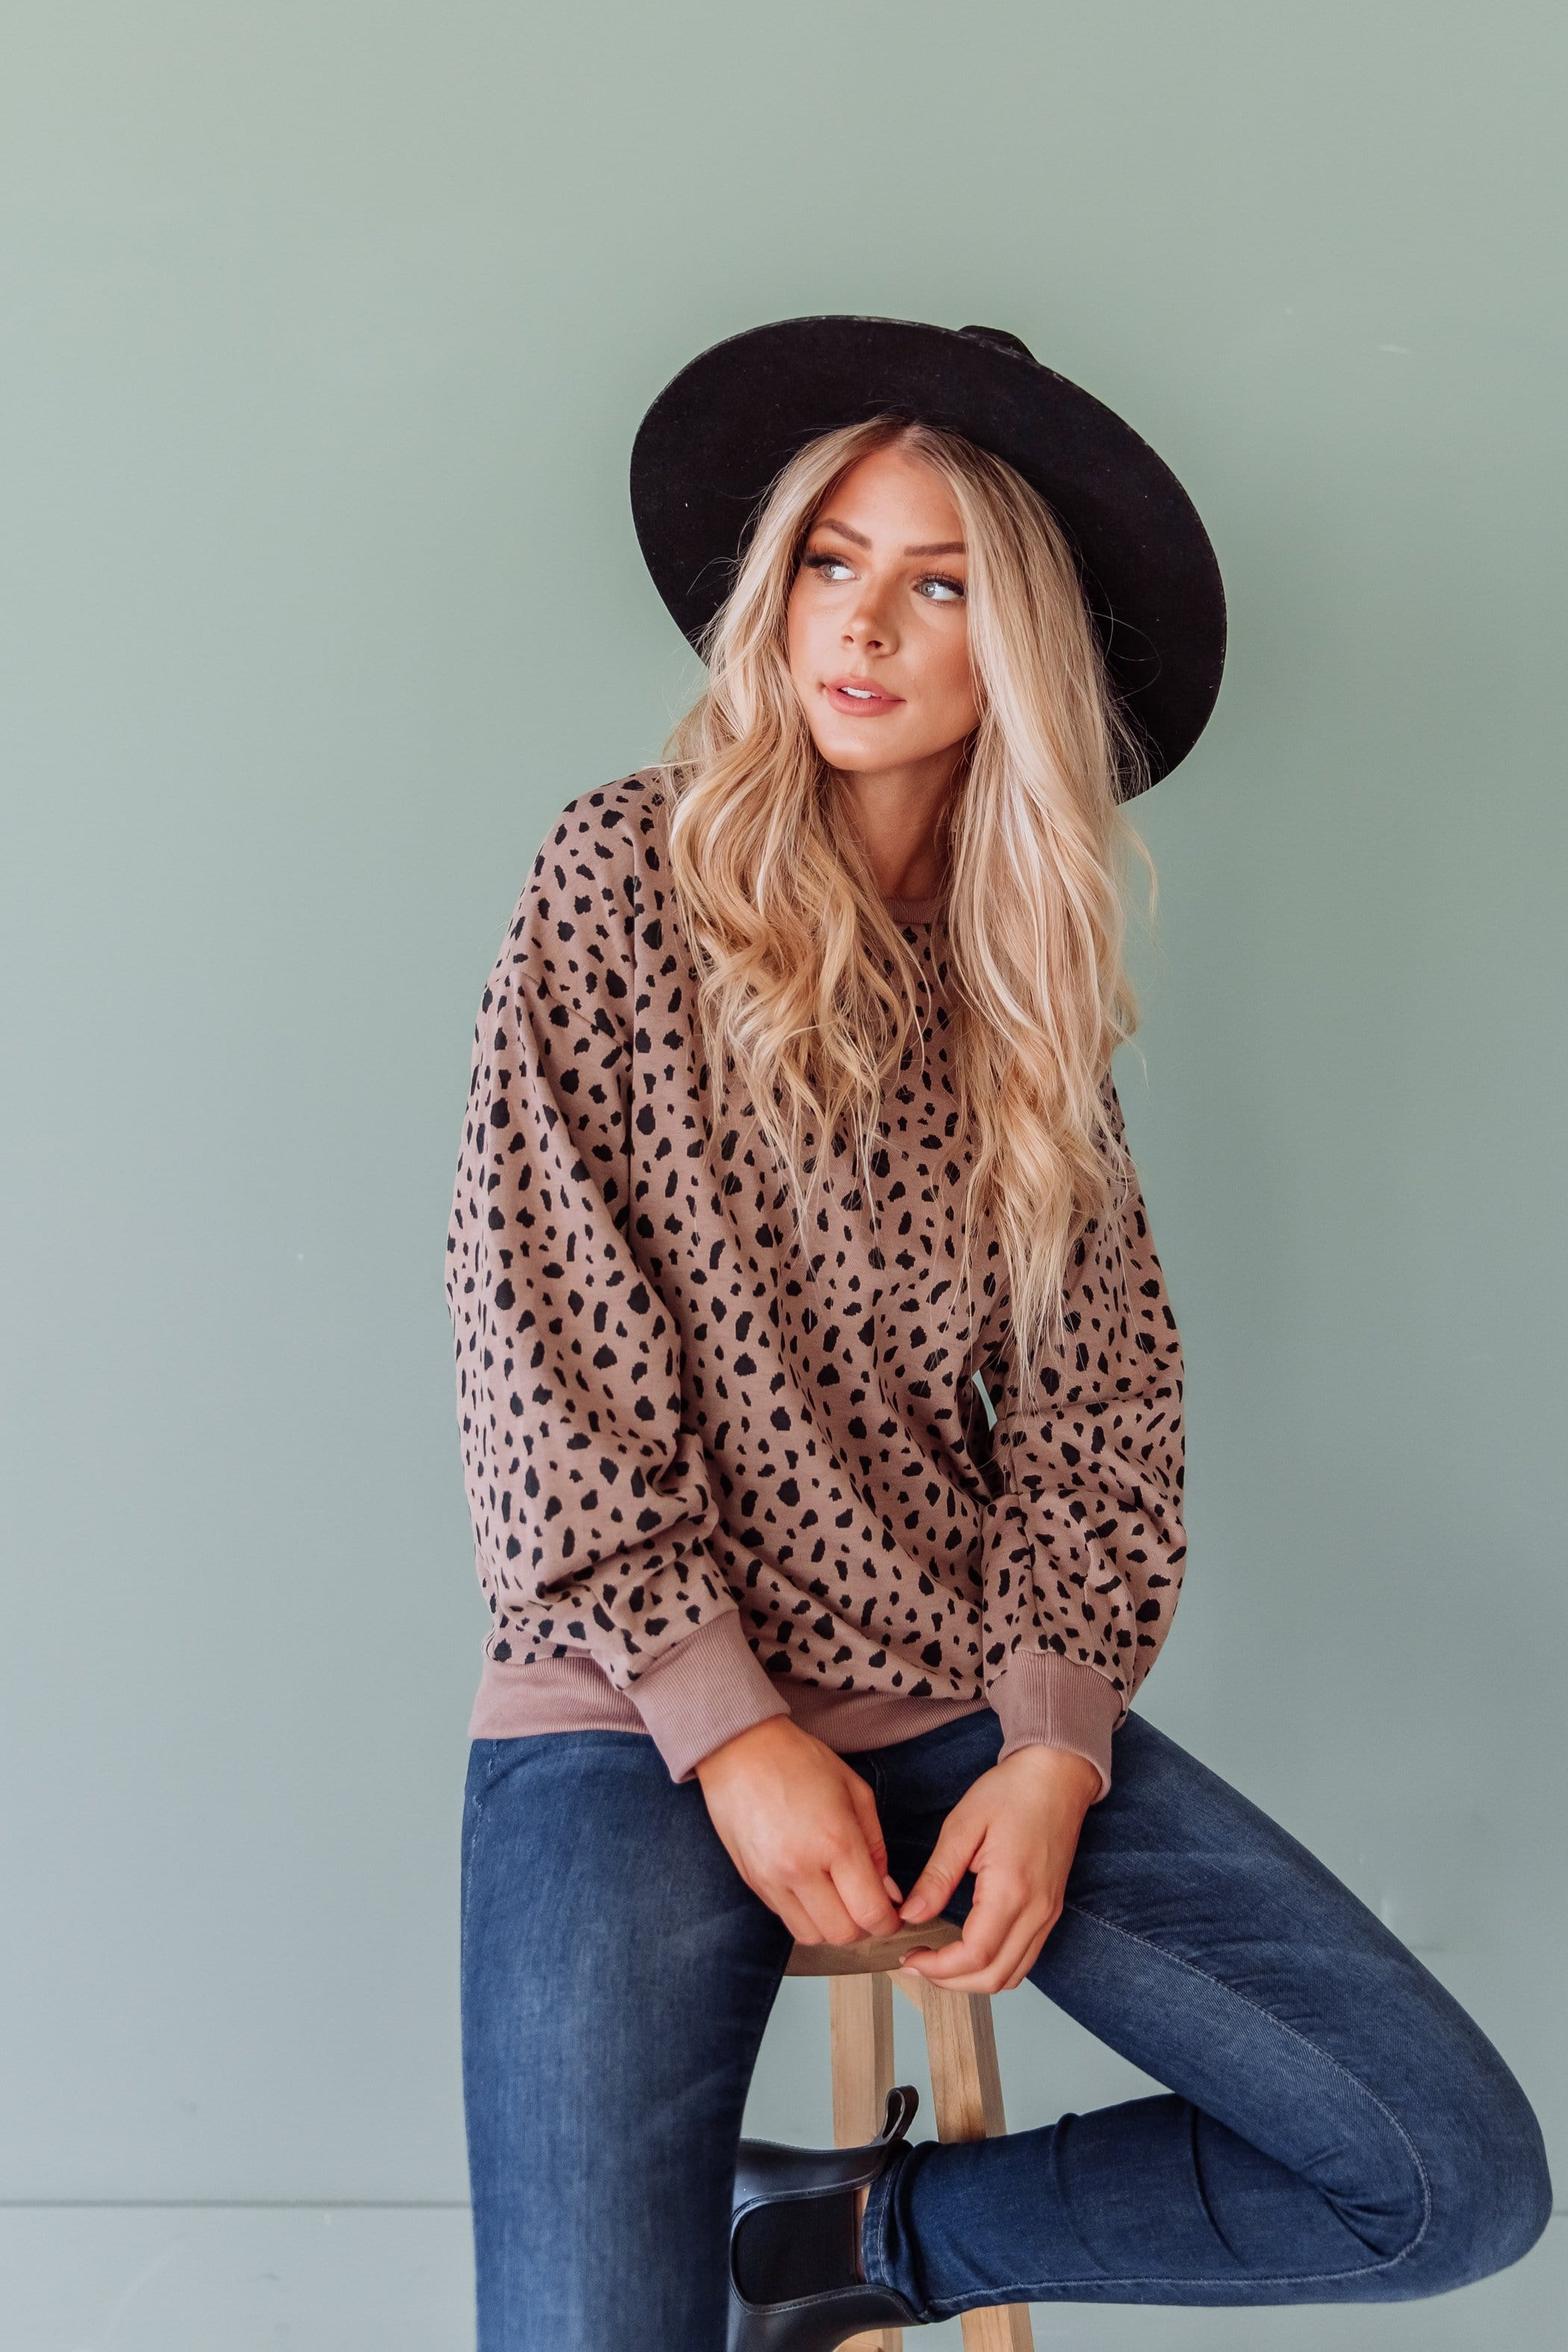 The Grafton Animal Print Sweater in Grey and Mocha